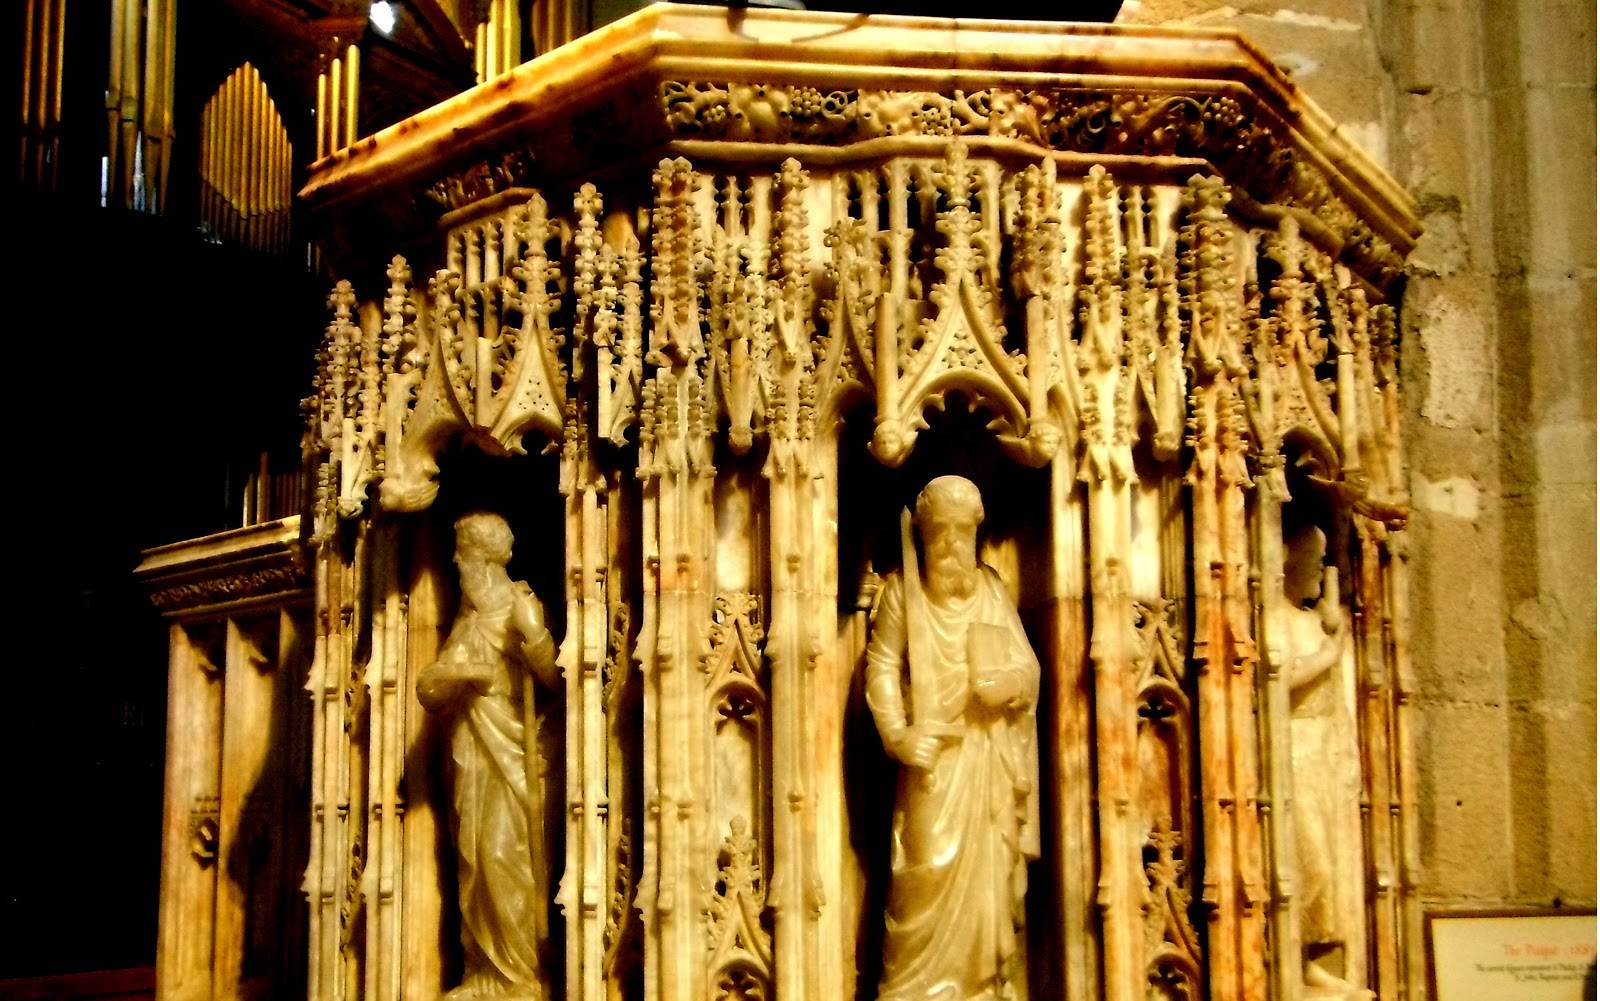 Pulpit, at St Nicholas Cathedral in Newcastle upon Tyne